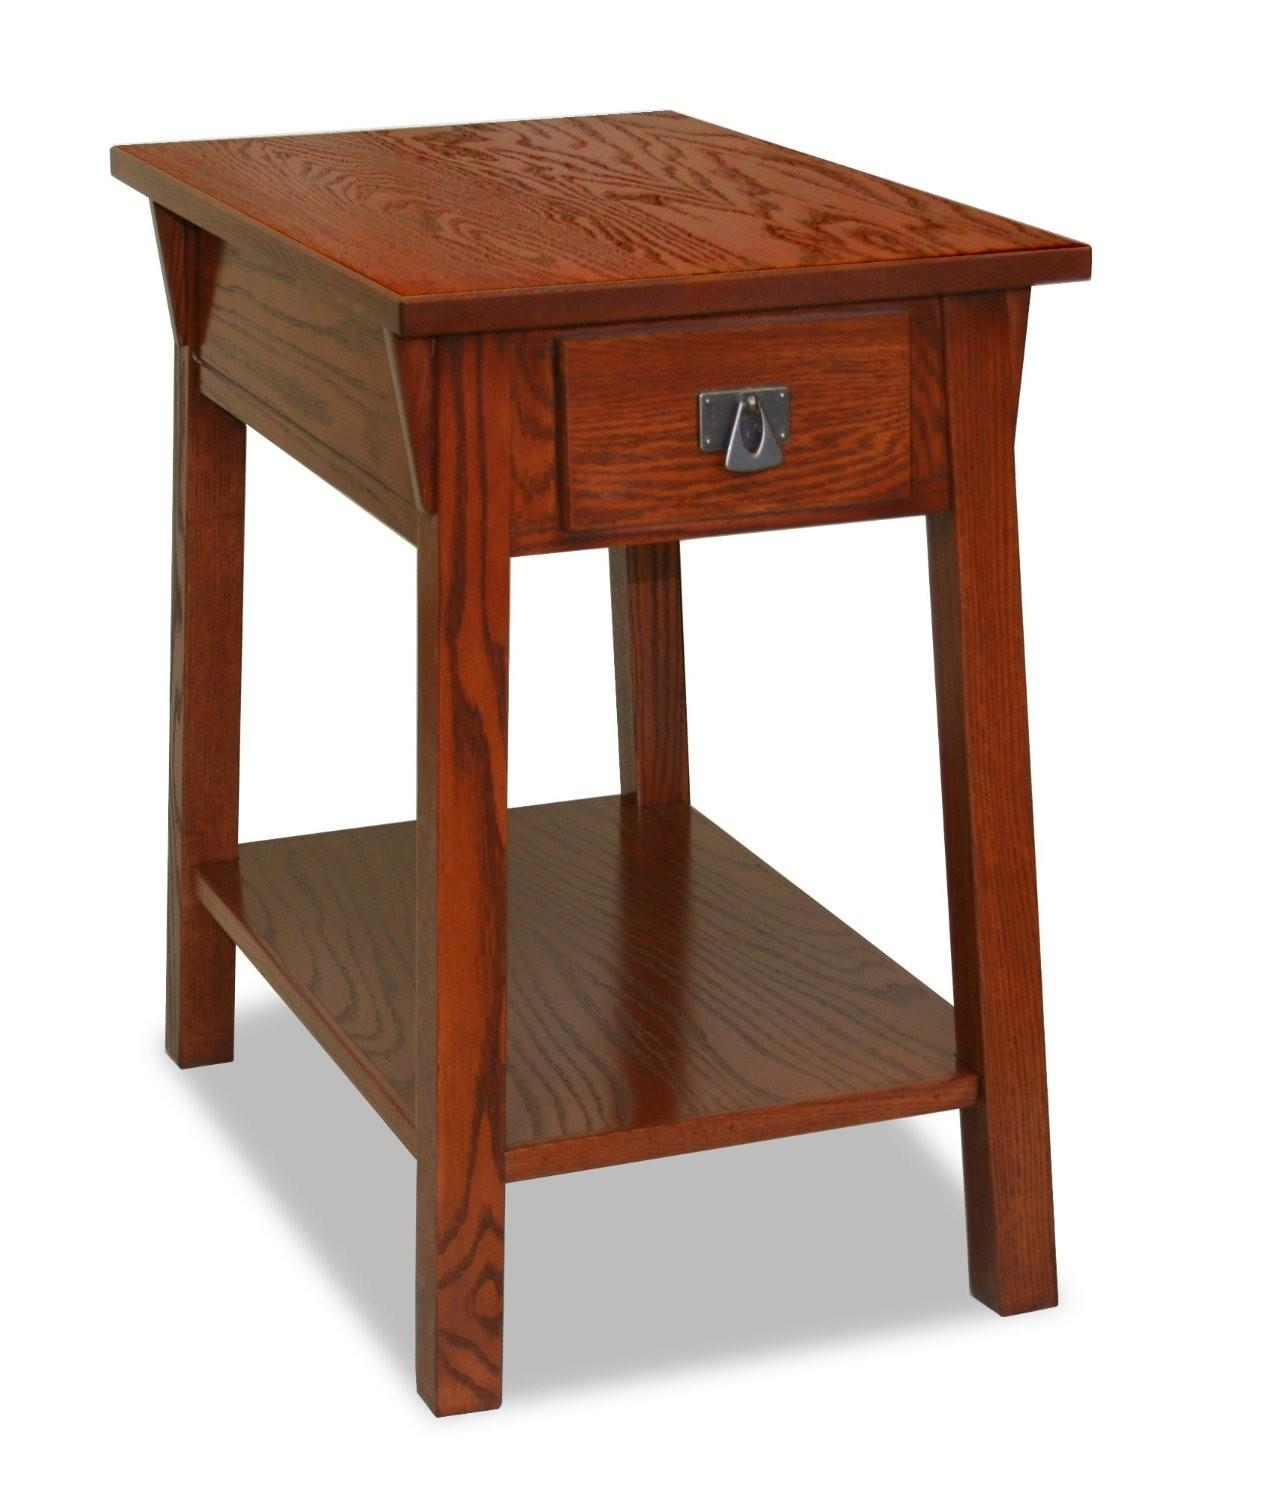 Narrow End Tables Startling Table Amazing Small